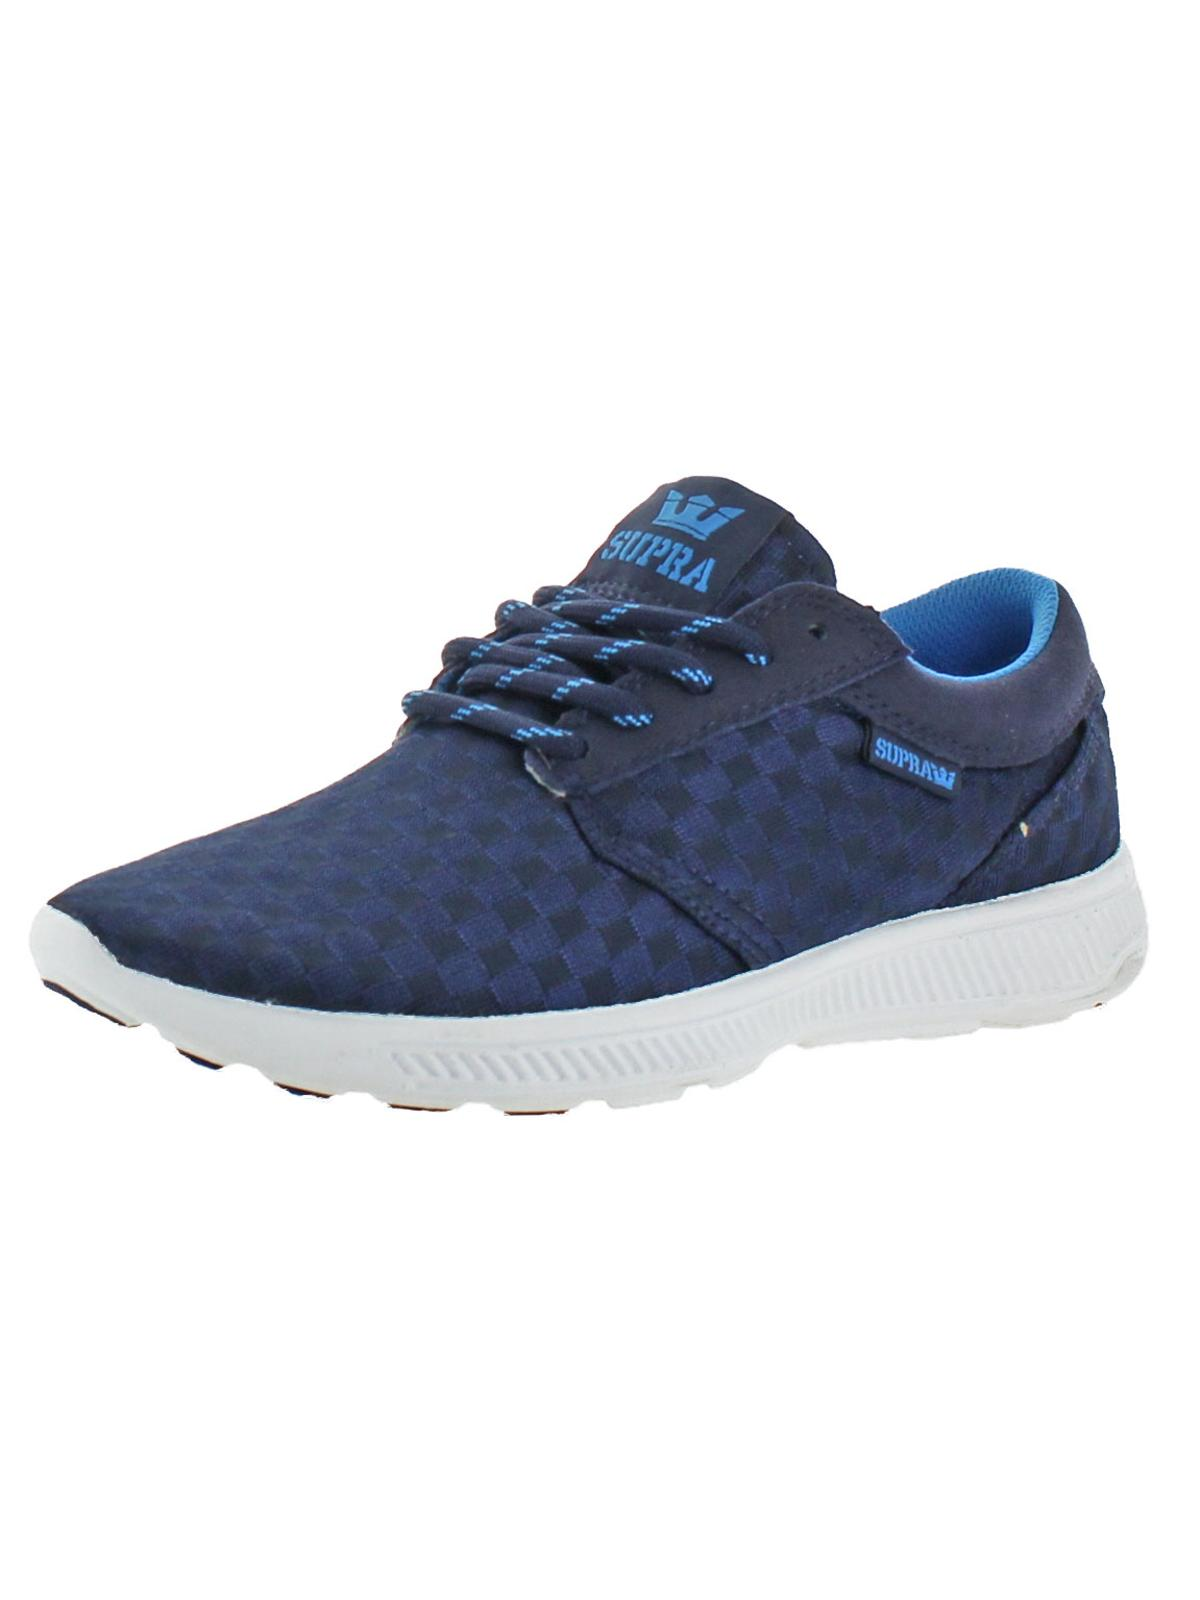 Supra Womens Hammer Run Breathable Lightweight Athletic Shoes